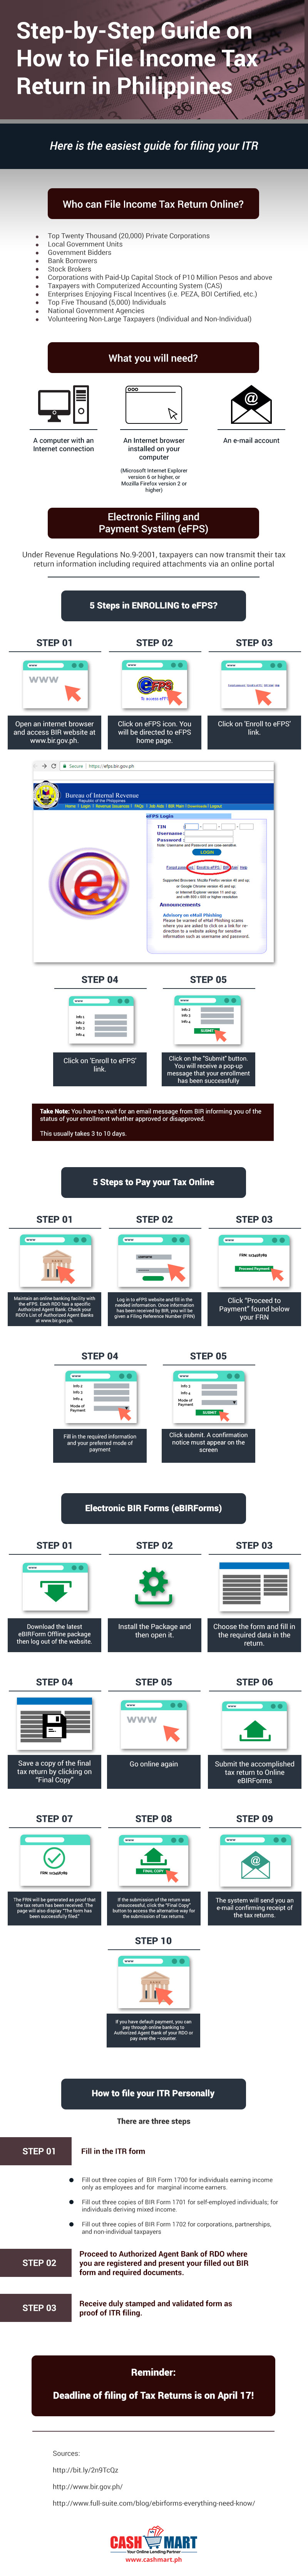 step-by-step-guide-on-how-to-file-income-tax-return-in-philippines_new